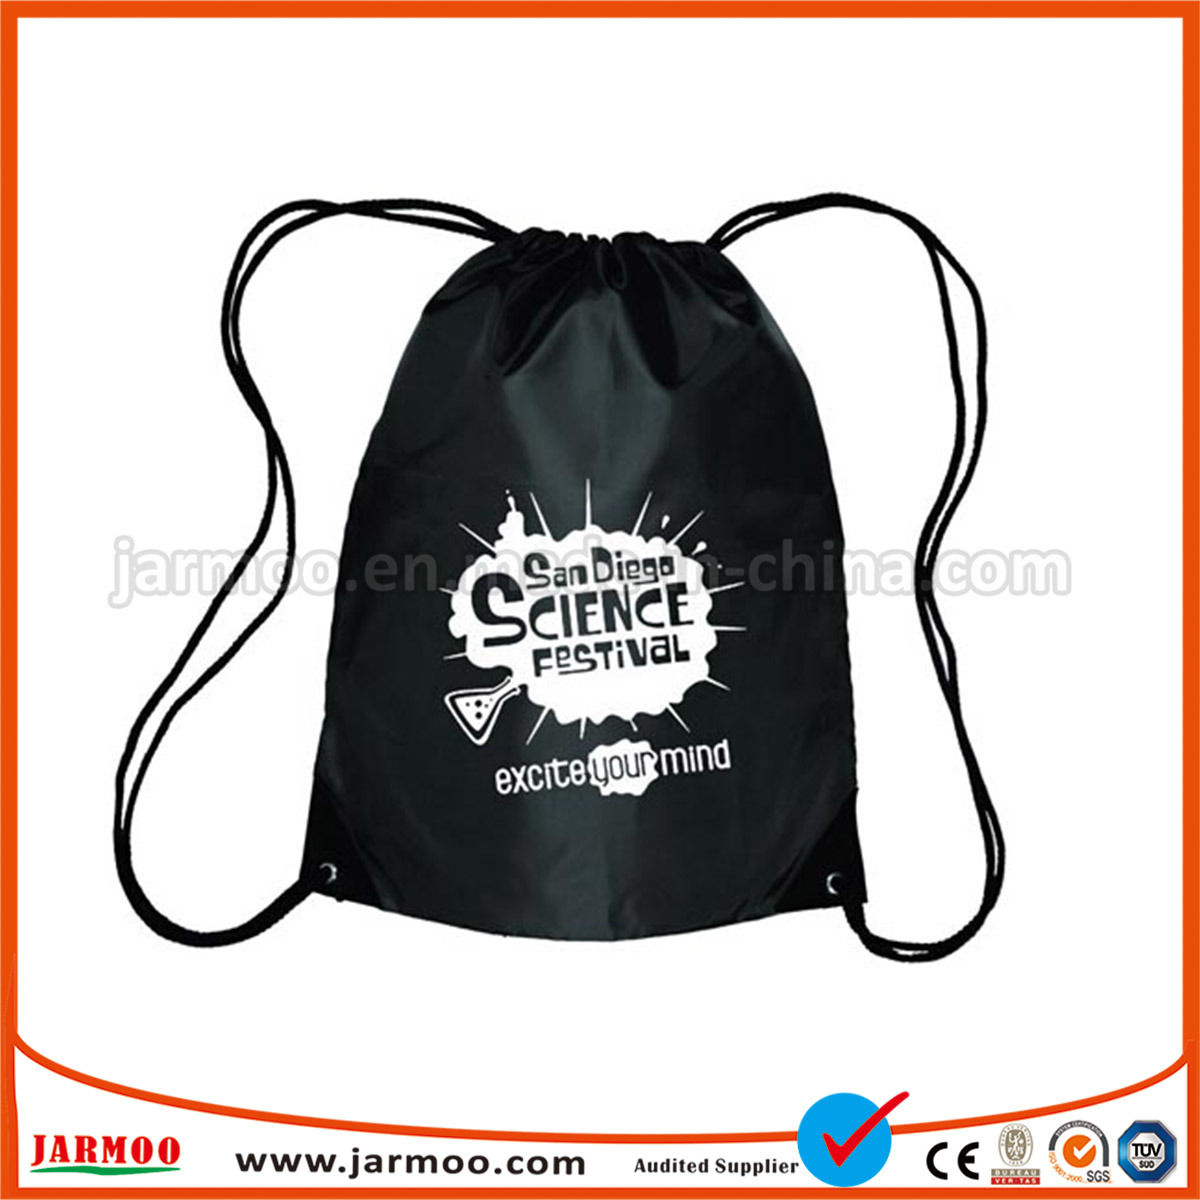 2610f6a285 China Promotional Nylon Wholesale Drawstring Bag - China Wholesale Drawstring  Bag, Wholesale Fabric Drawstring Bag